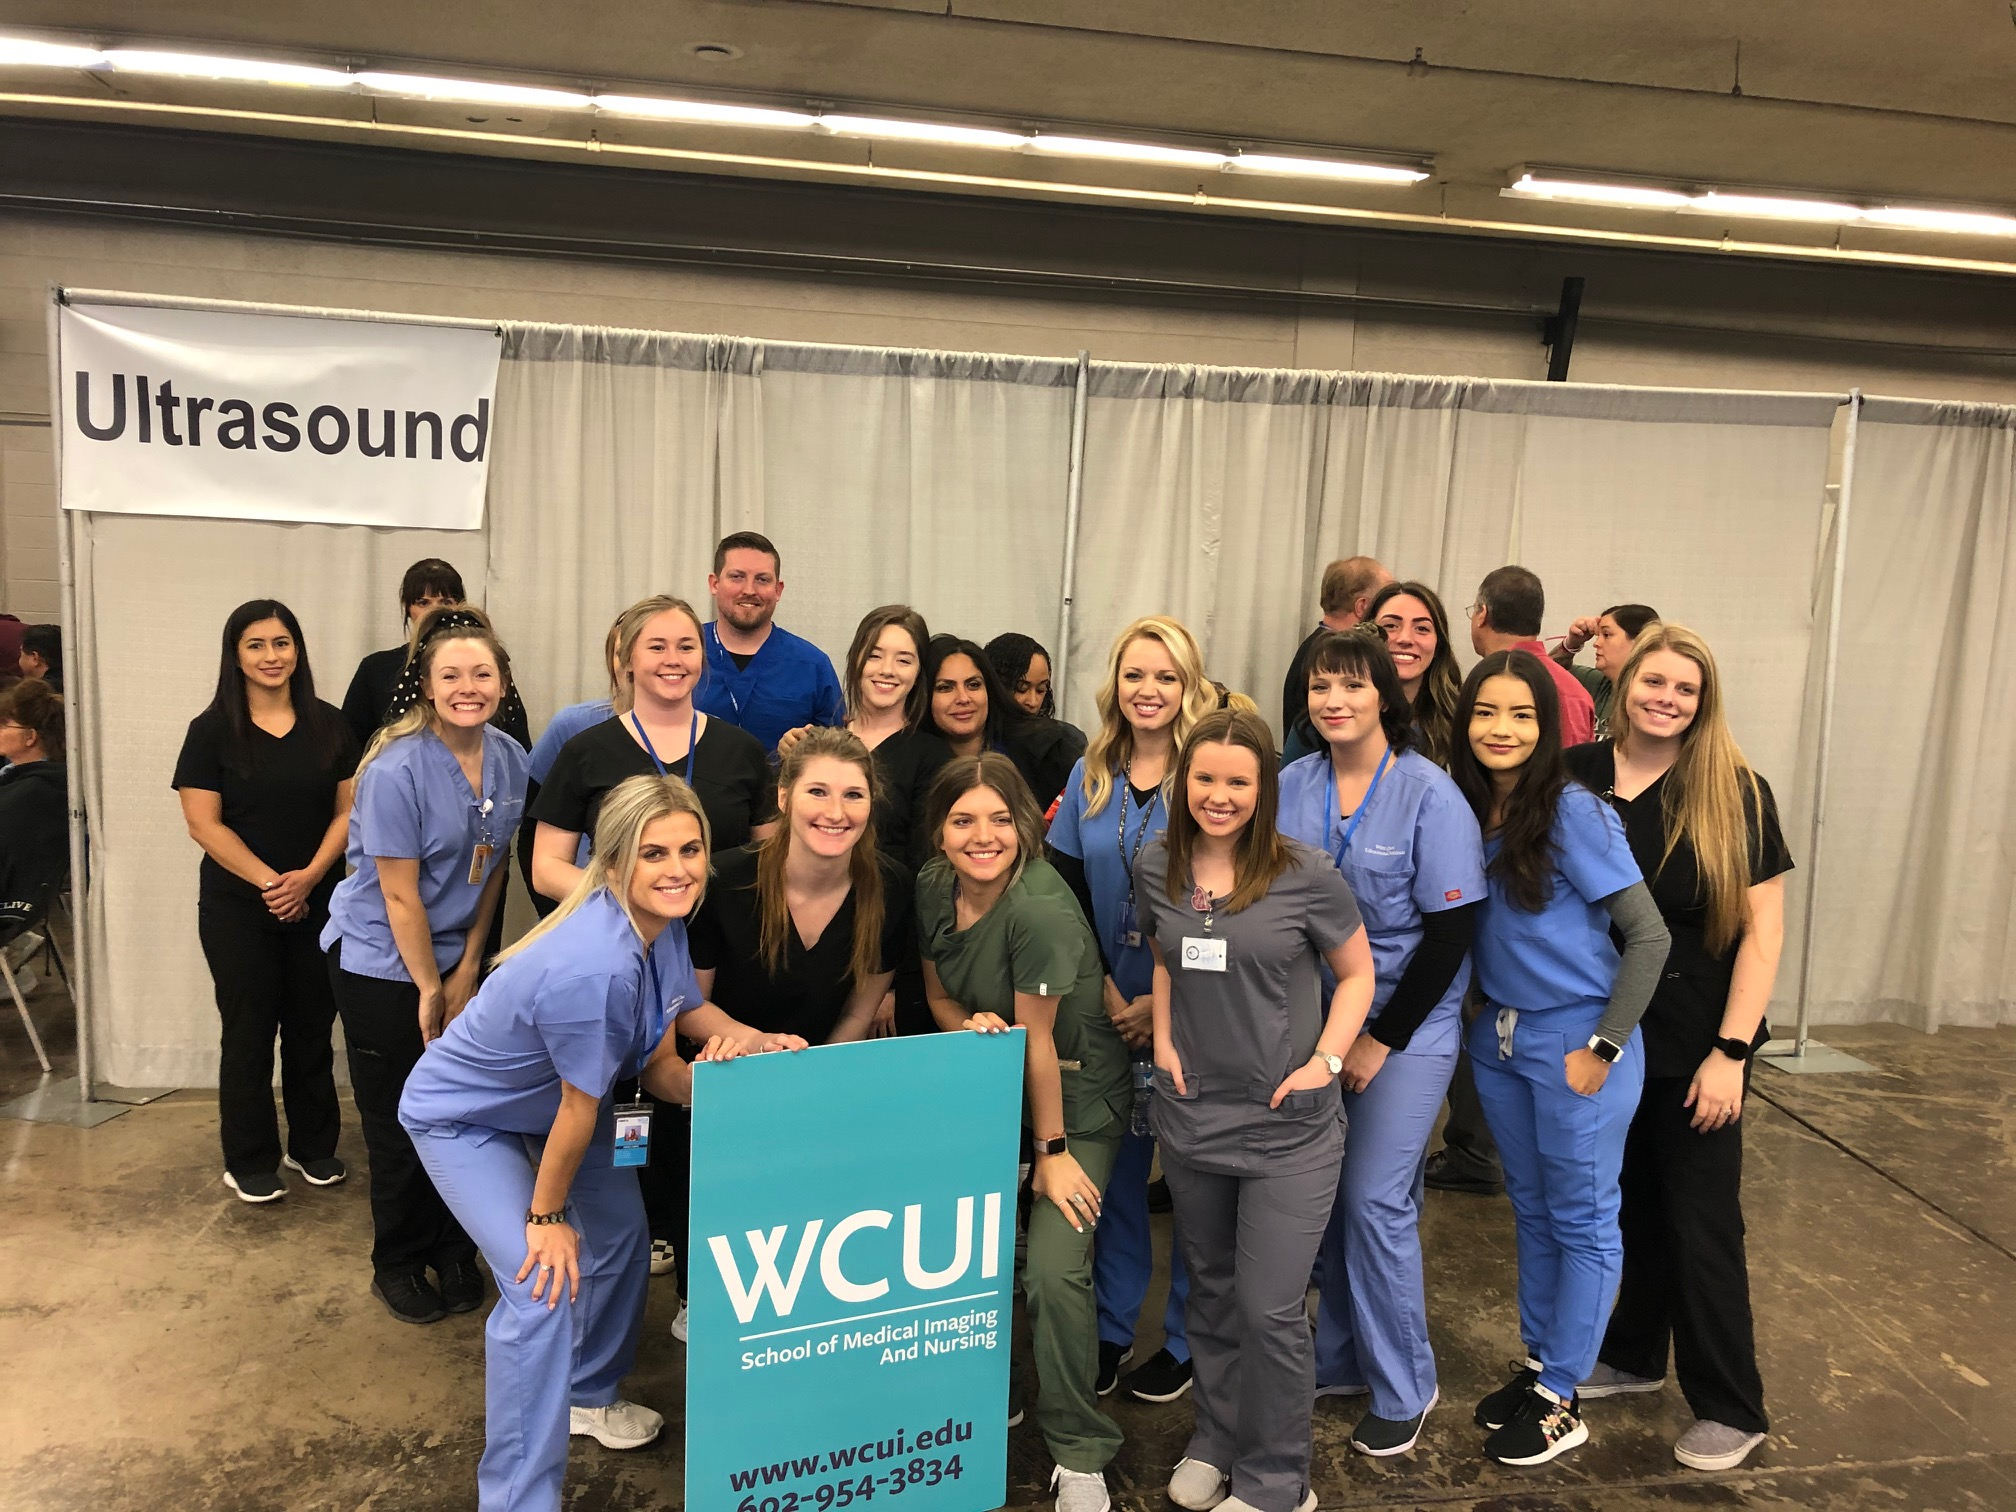 WCUI Student and Staff smiling in a group photo after the MC StandDown